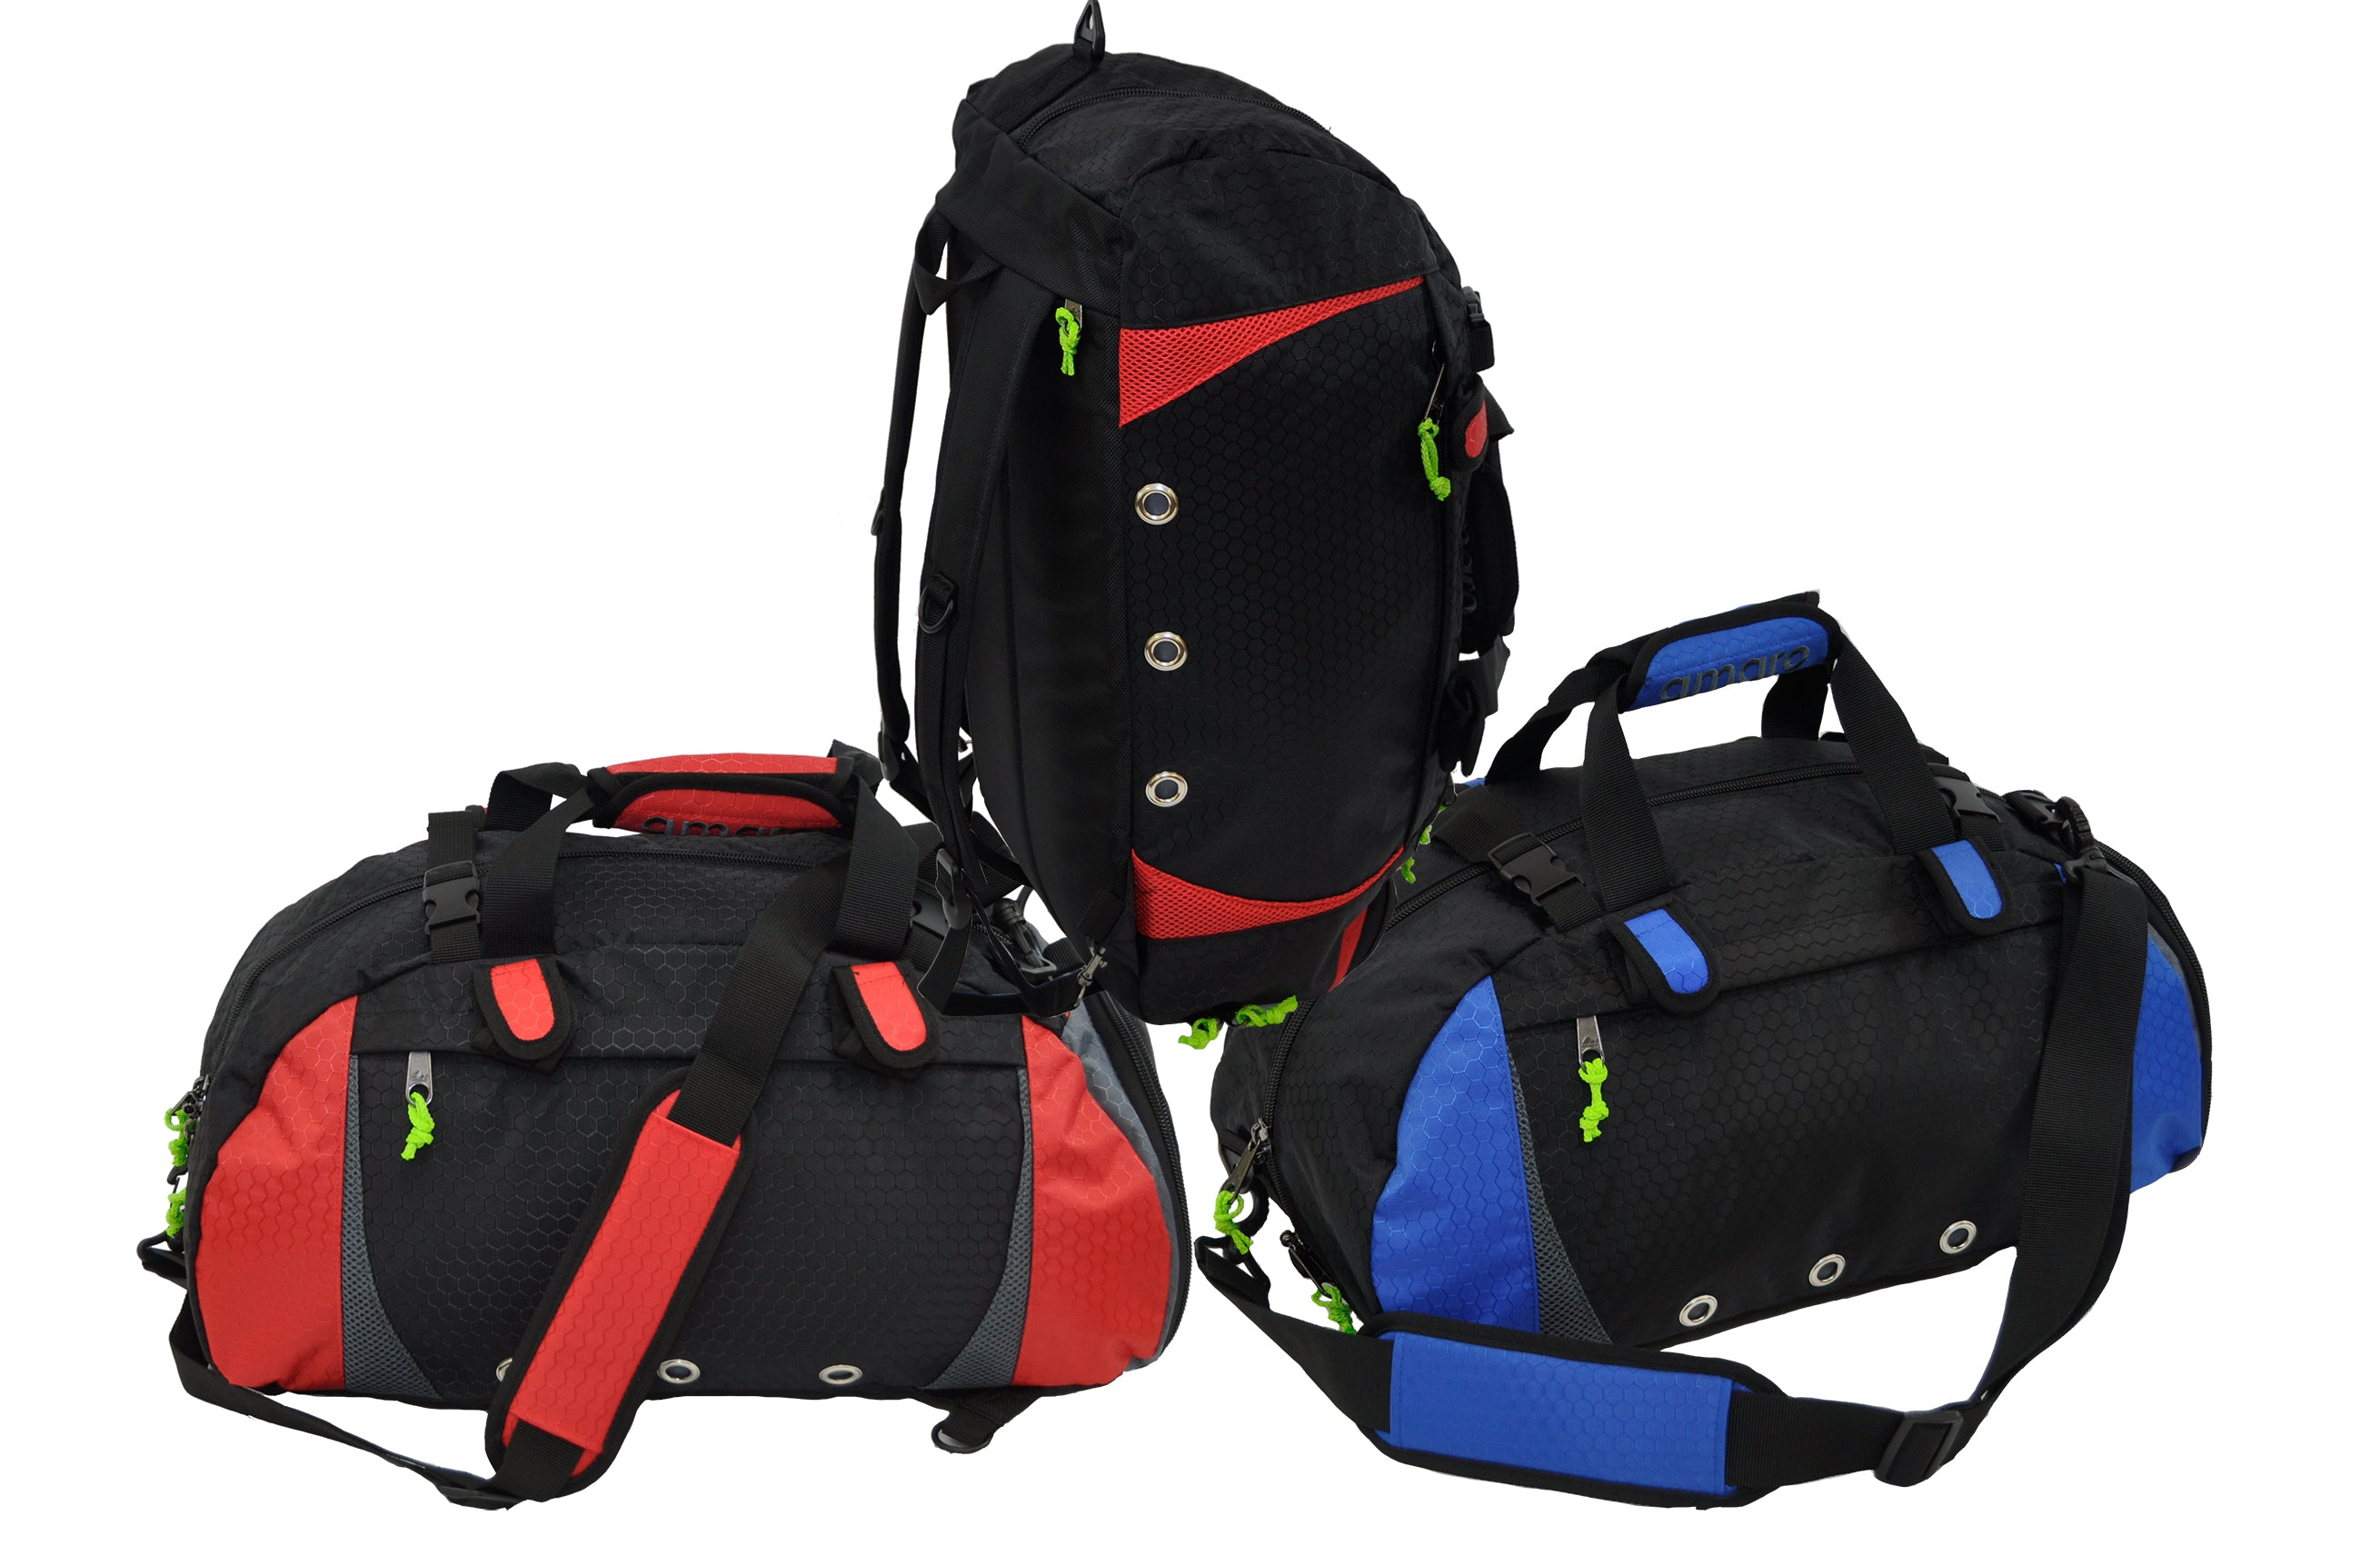 c0c5765a59db ...  Amaro Warzone Lacrosse Gear Bag  - little Bags planet ...